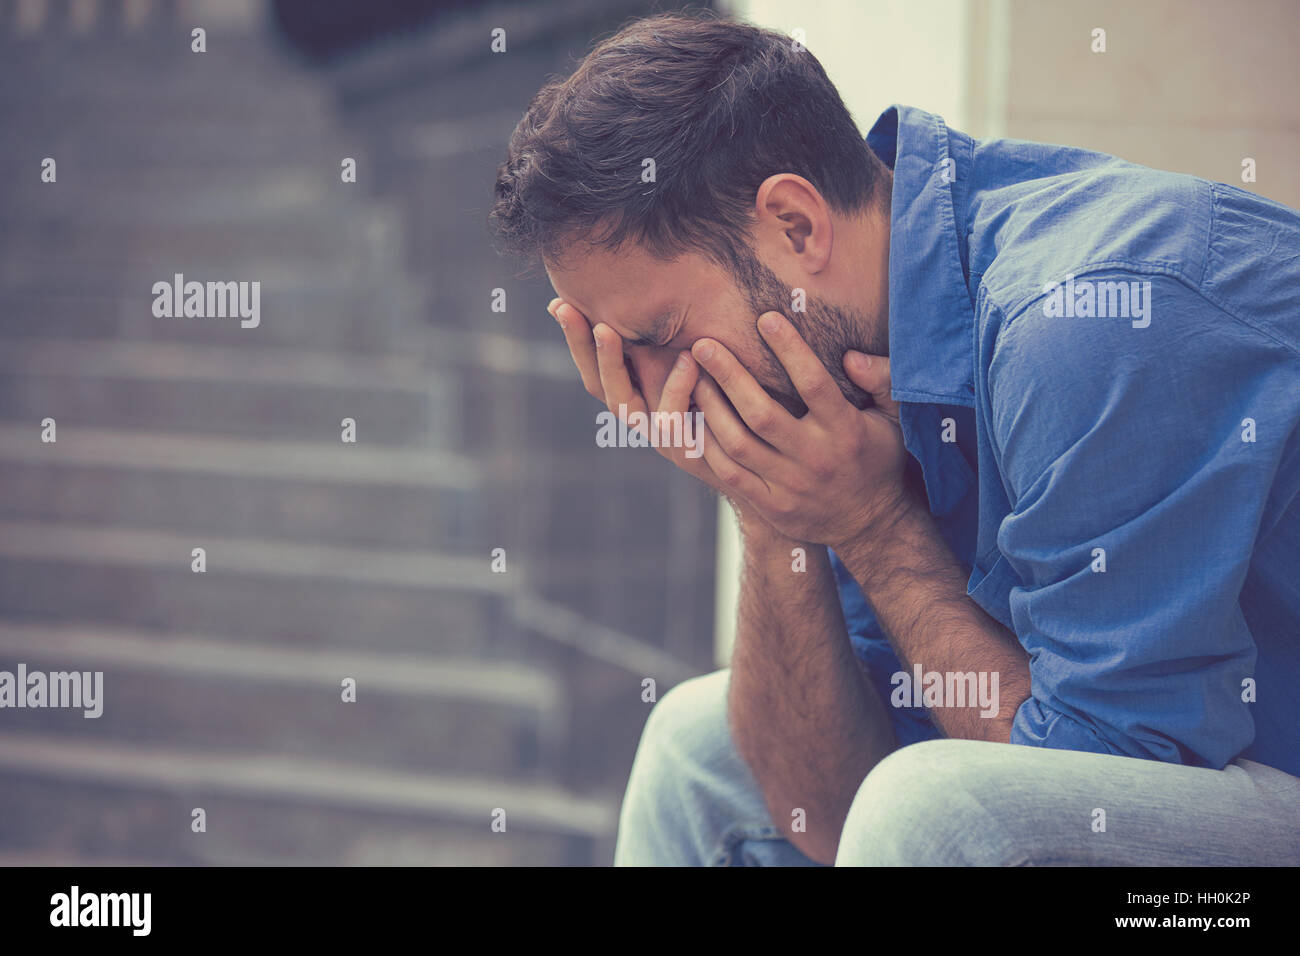 side profile stressed sad young crying man sitting outside holding head with hands looking down. Human emotion feelings Stock Photo